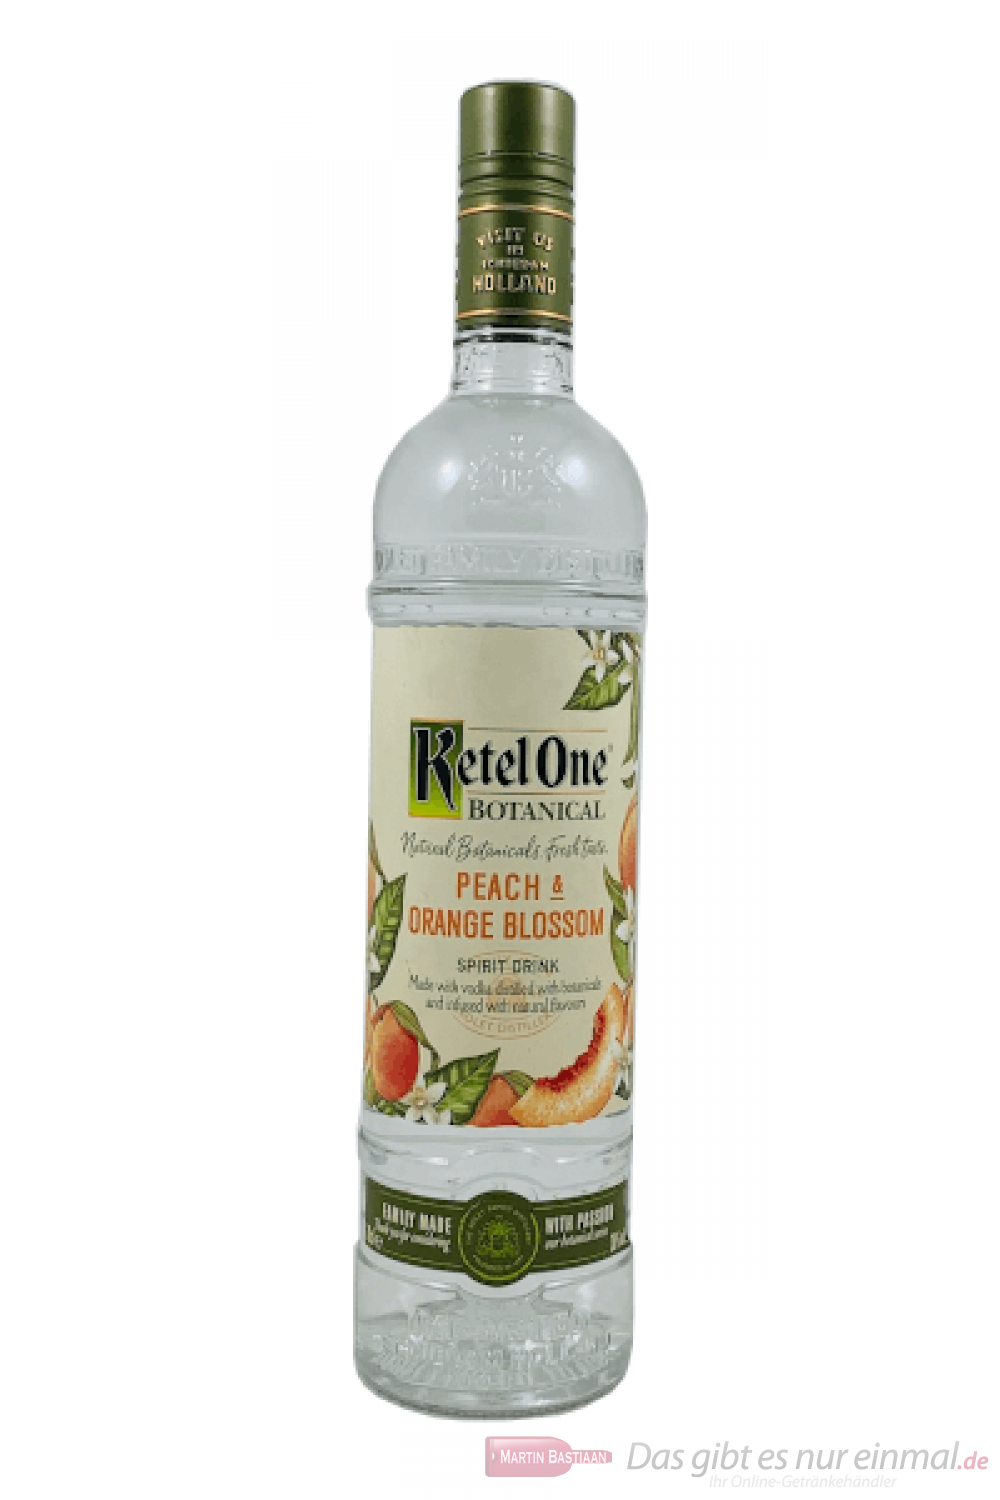 Ketel One Botanicals Peach & Orangeblossom 0,7l